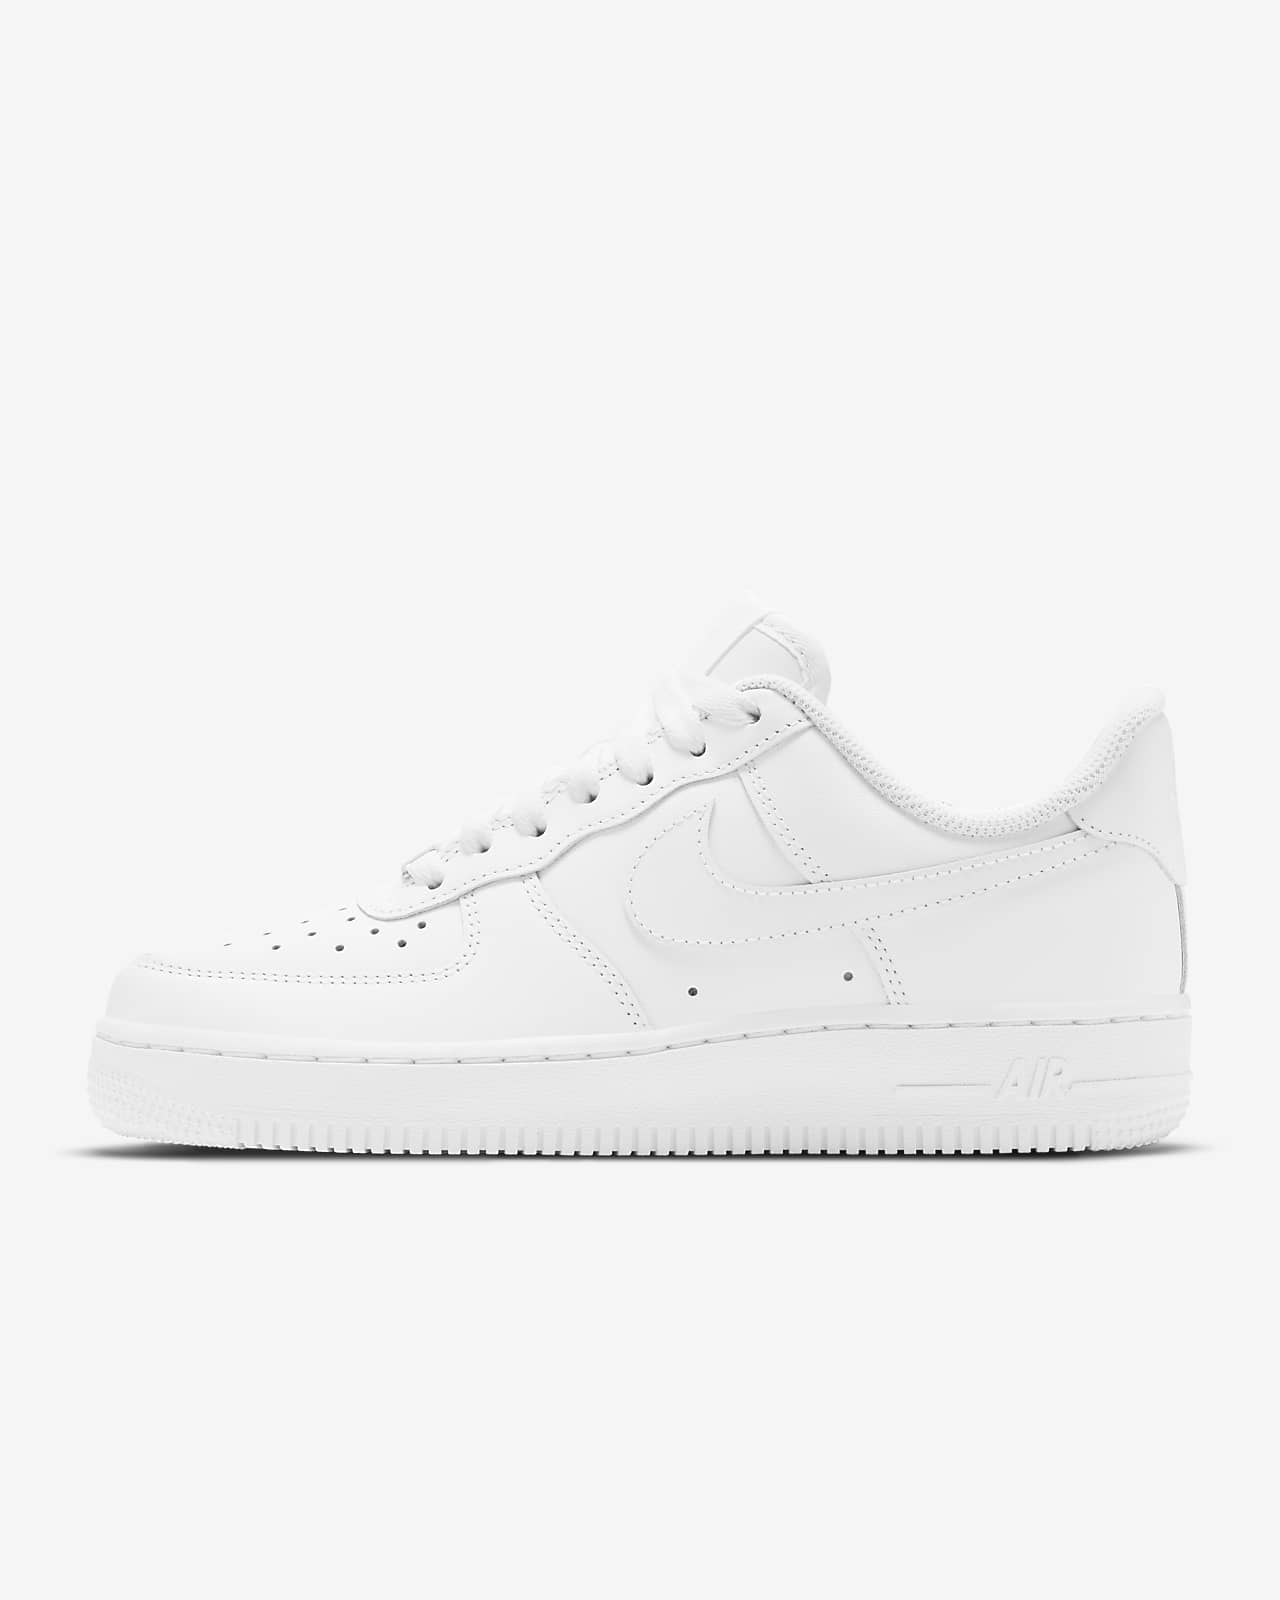 nike air force one femme blanche et or